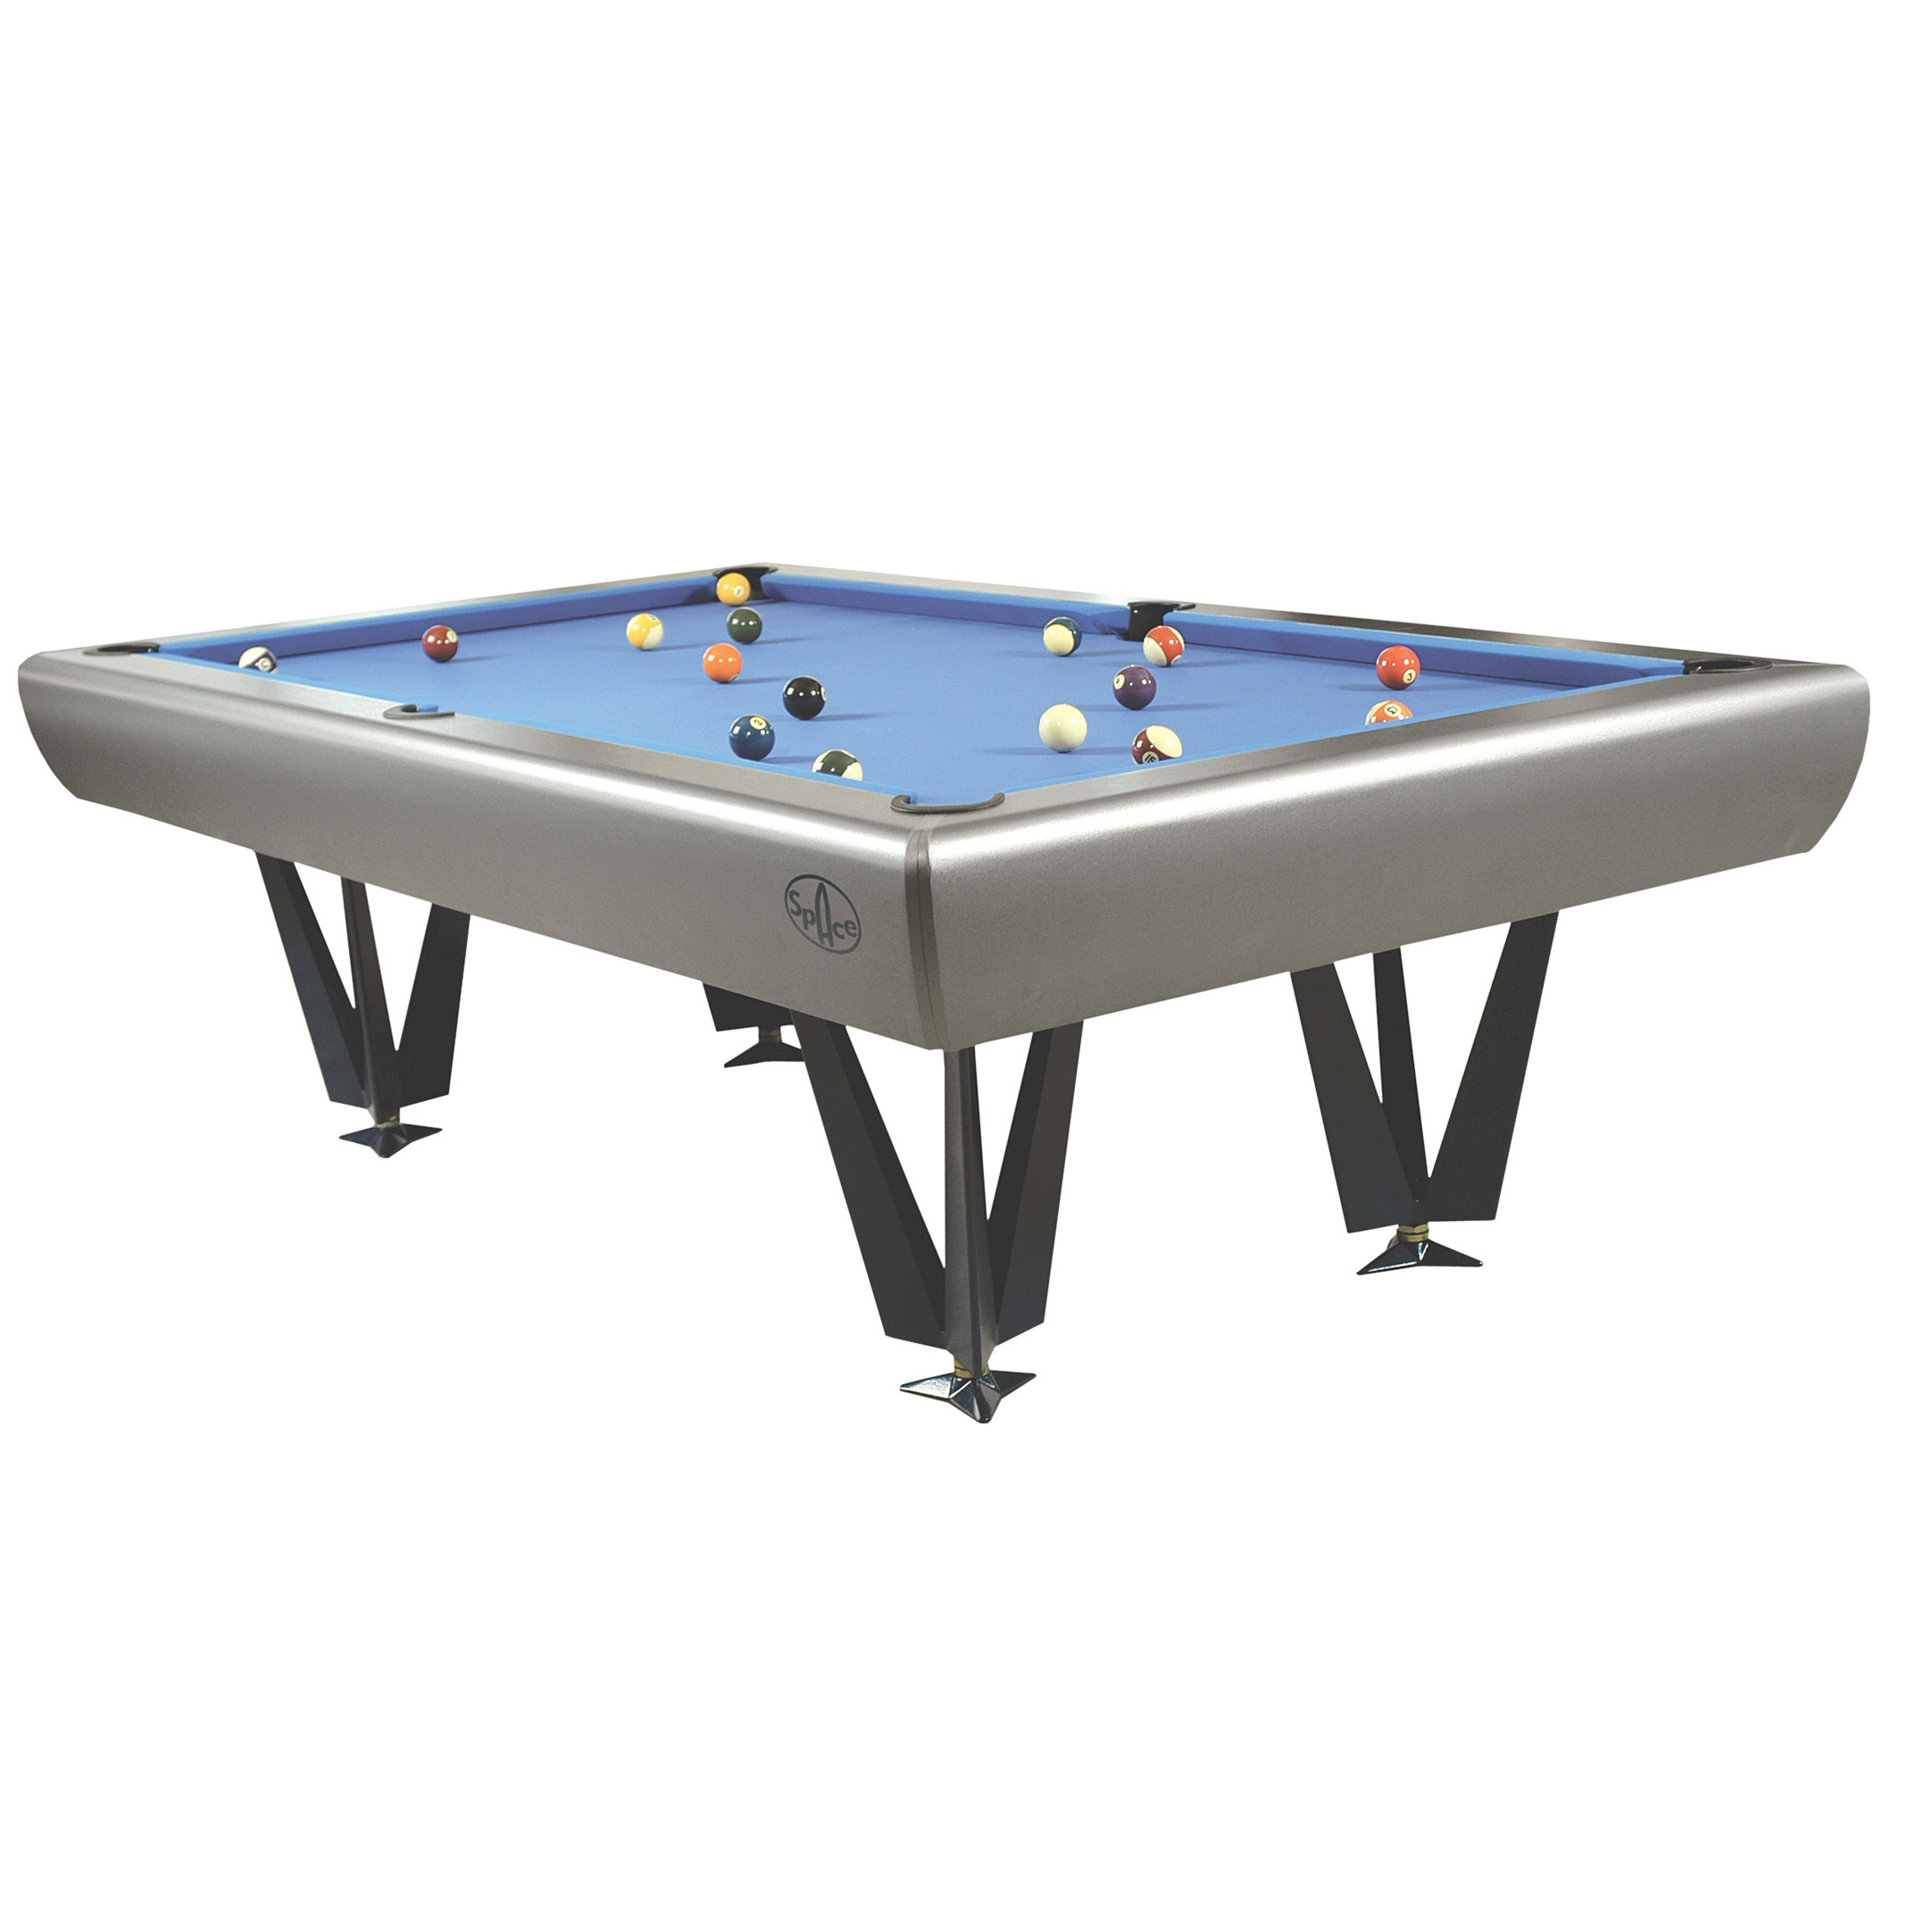 Mesa Snooker Space T/245 usada